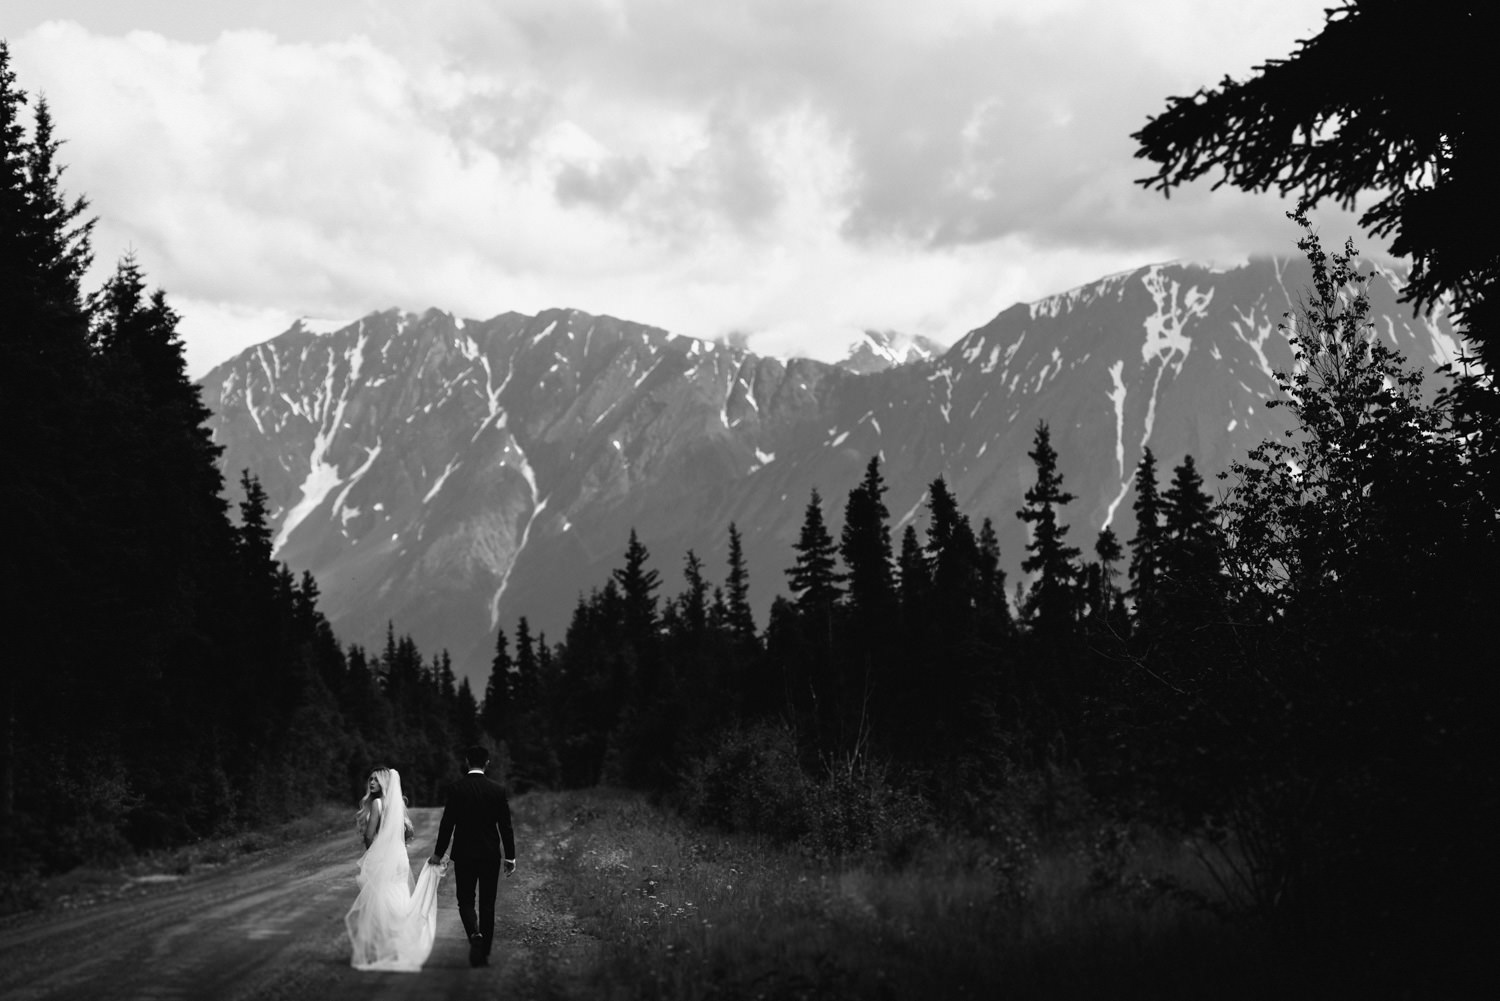 bride and groom walk down road in shadow of alaskan mountains